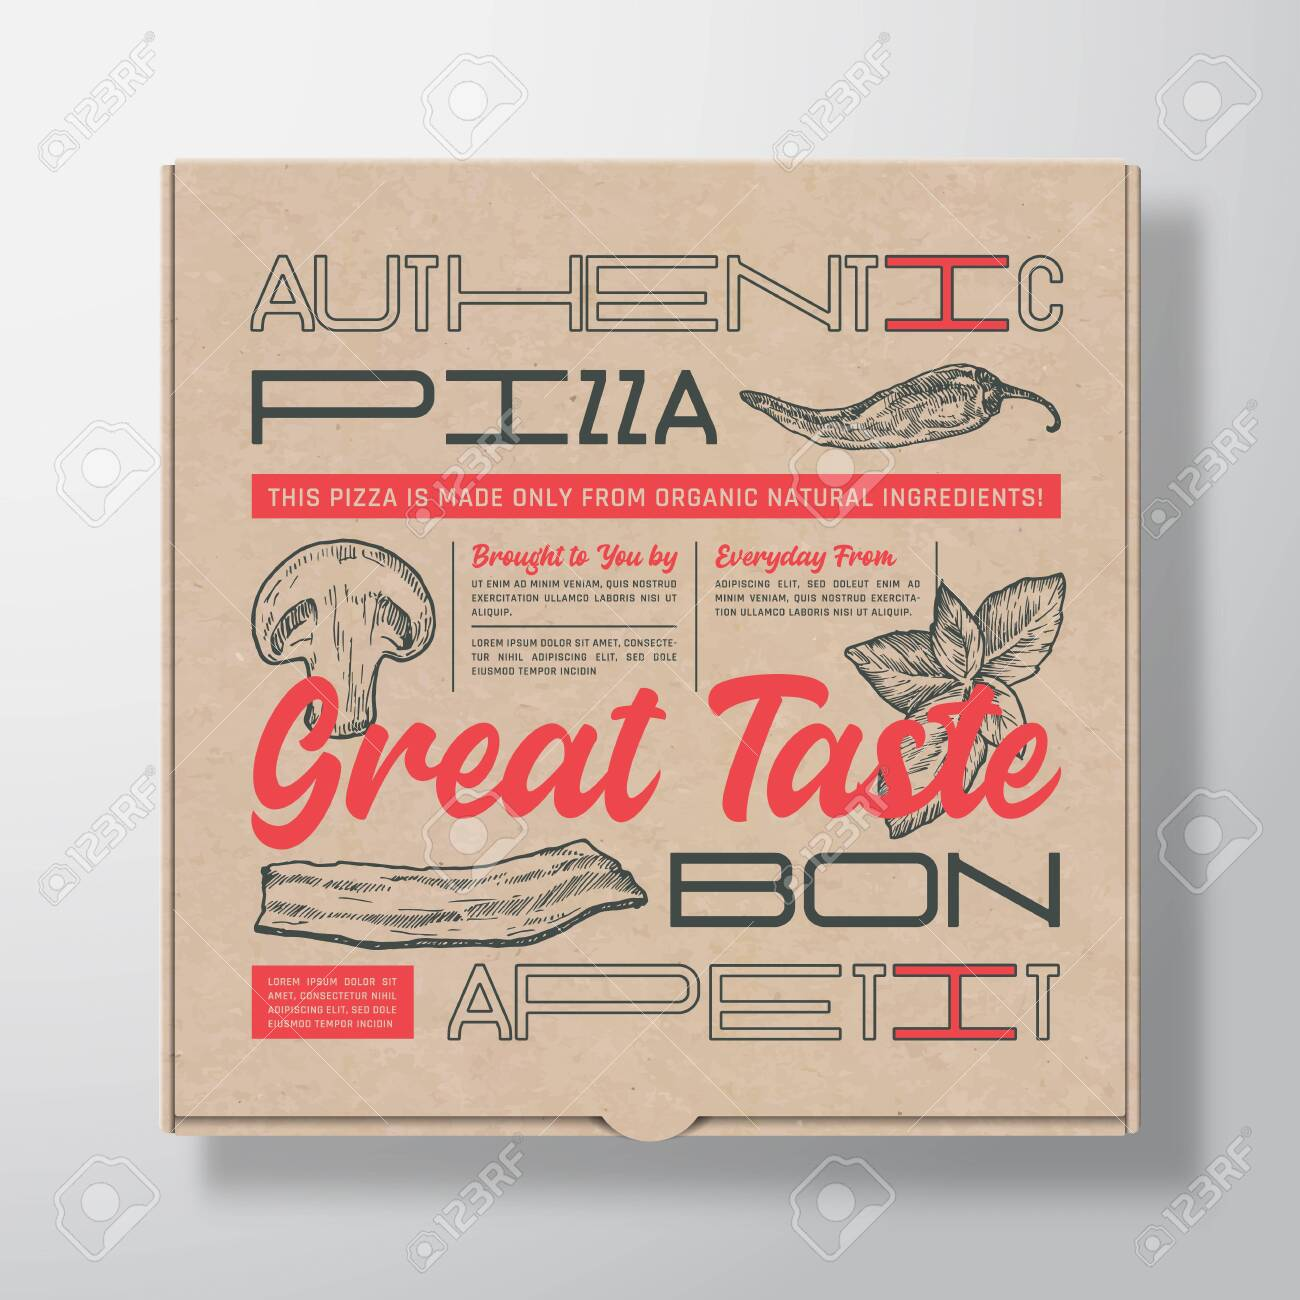 Pizza Realistic Cardboard Box Container. Abstract Vector Packaging Design or Label. Modern Typography, Hand Drawn Ingredients Mushroom, Basil, Bacon and Chilly. Craft Paper Background Layout. - 135462468